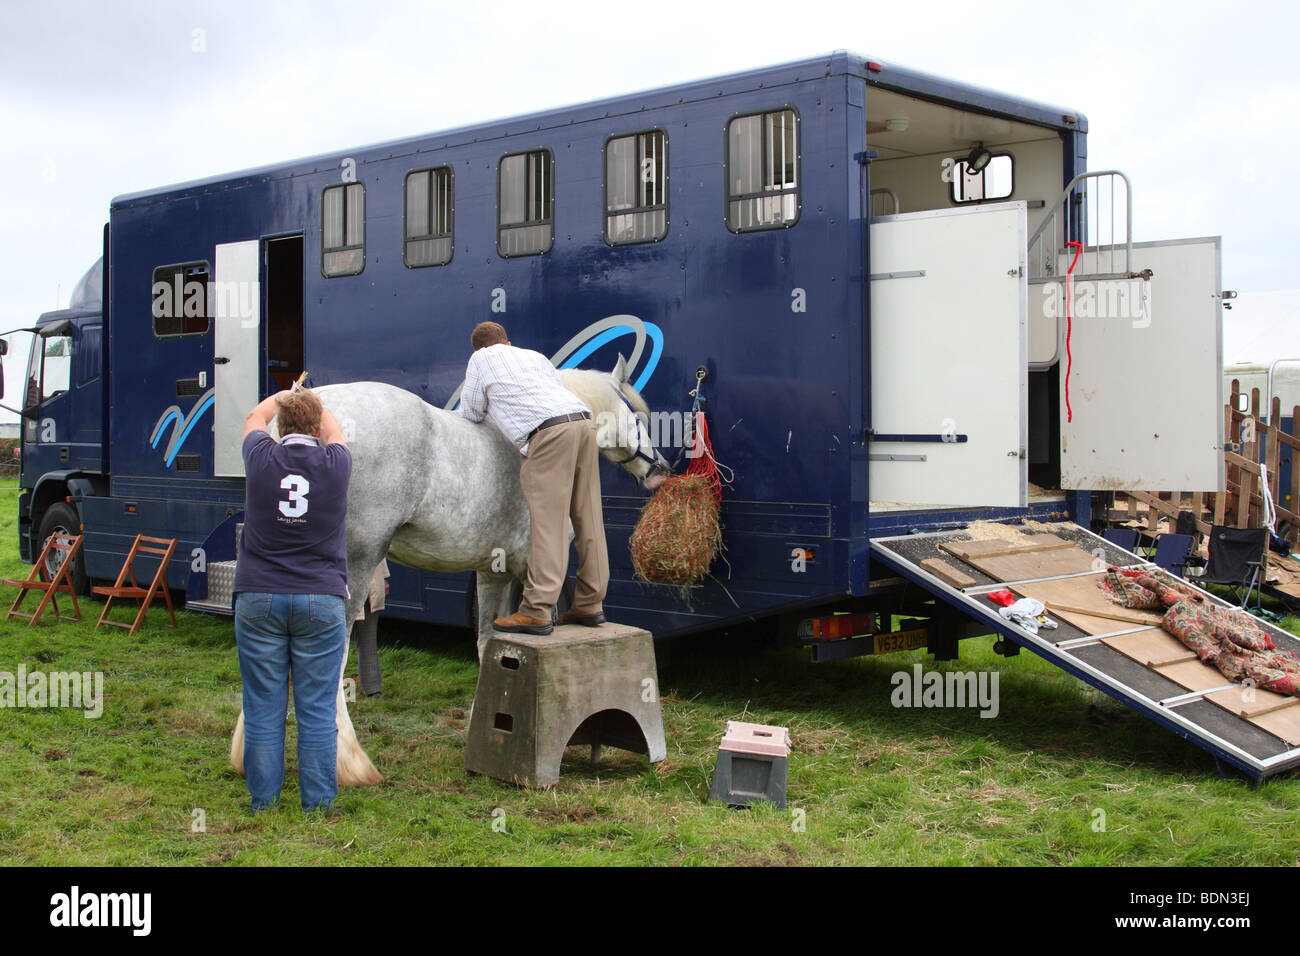 Horse tethered to a horse box at the Moorgreen Show, Moorgreen, Nottinghamshire, England, U.K. - Stock Image